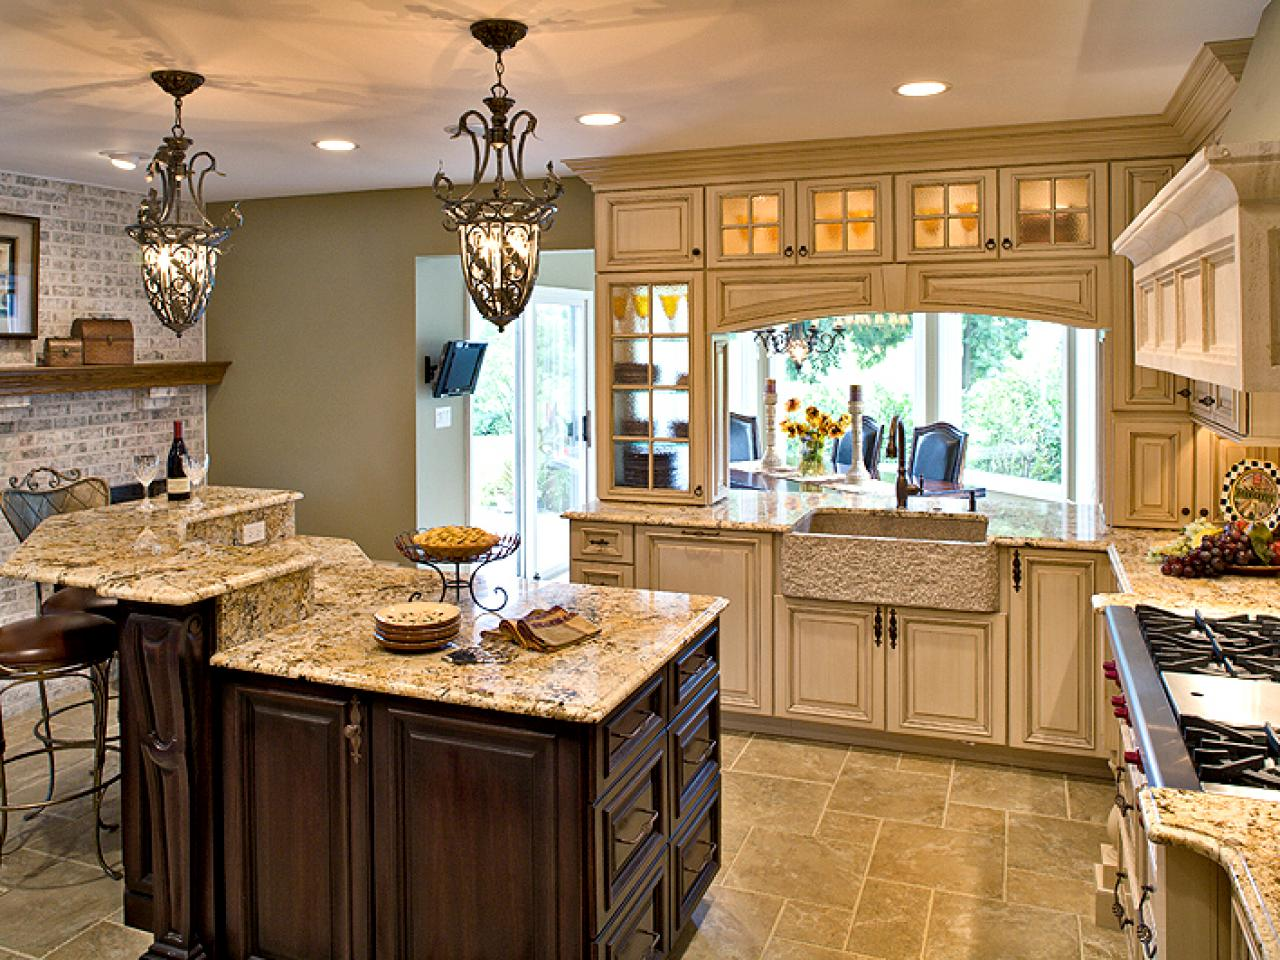 UnderCabinet Kitchen Lighting Pictures  Ideas From HGTV